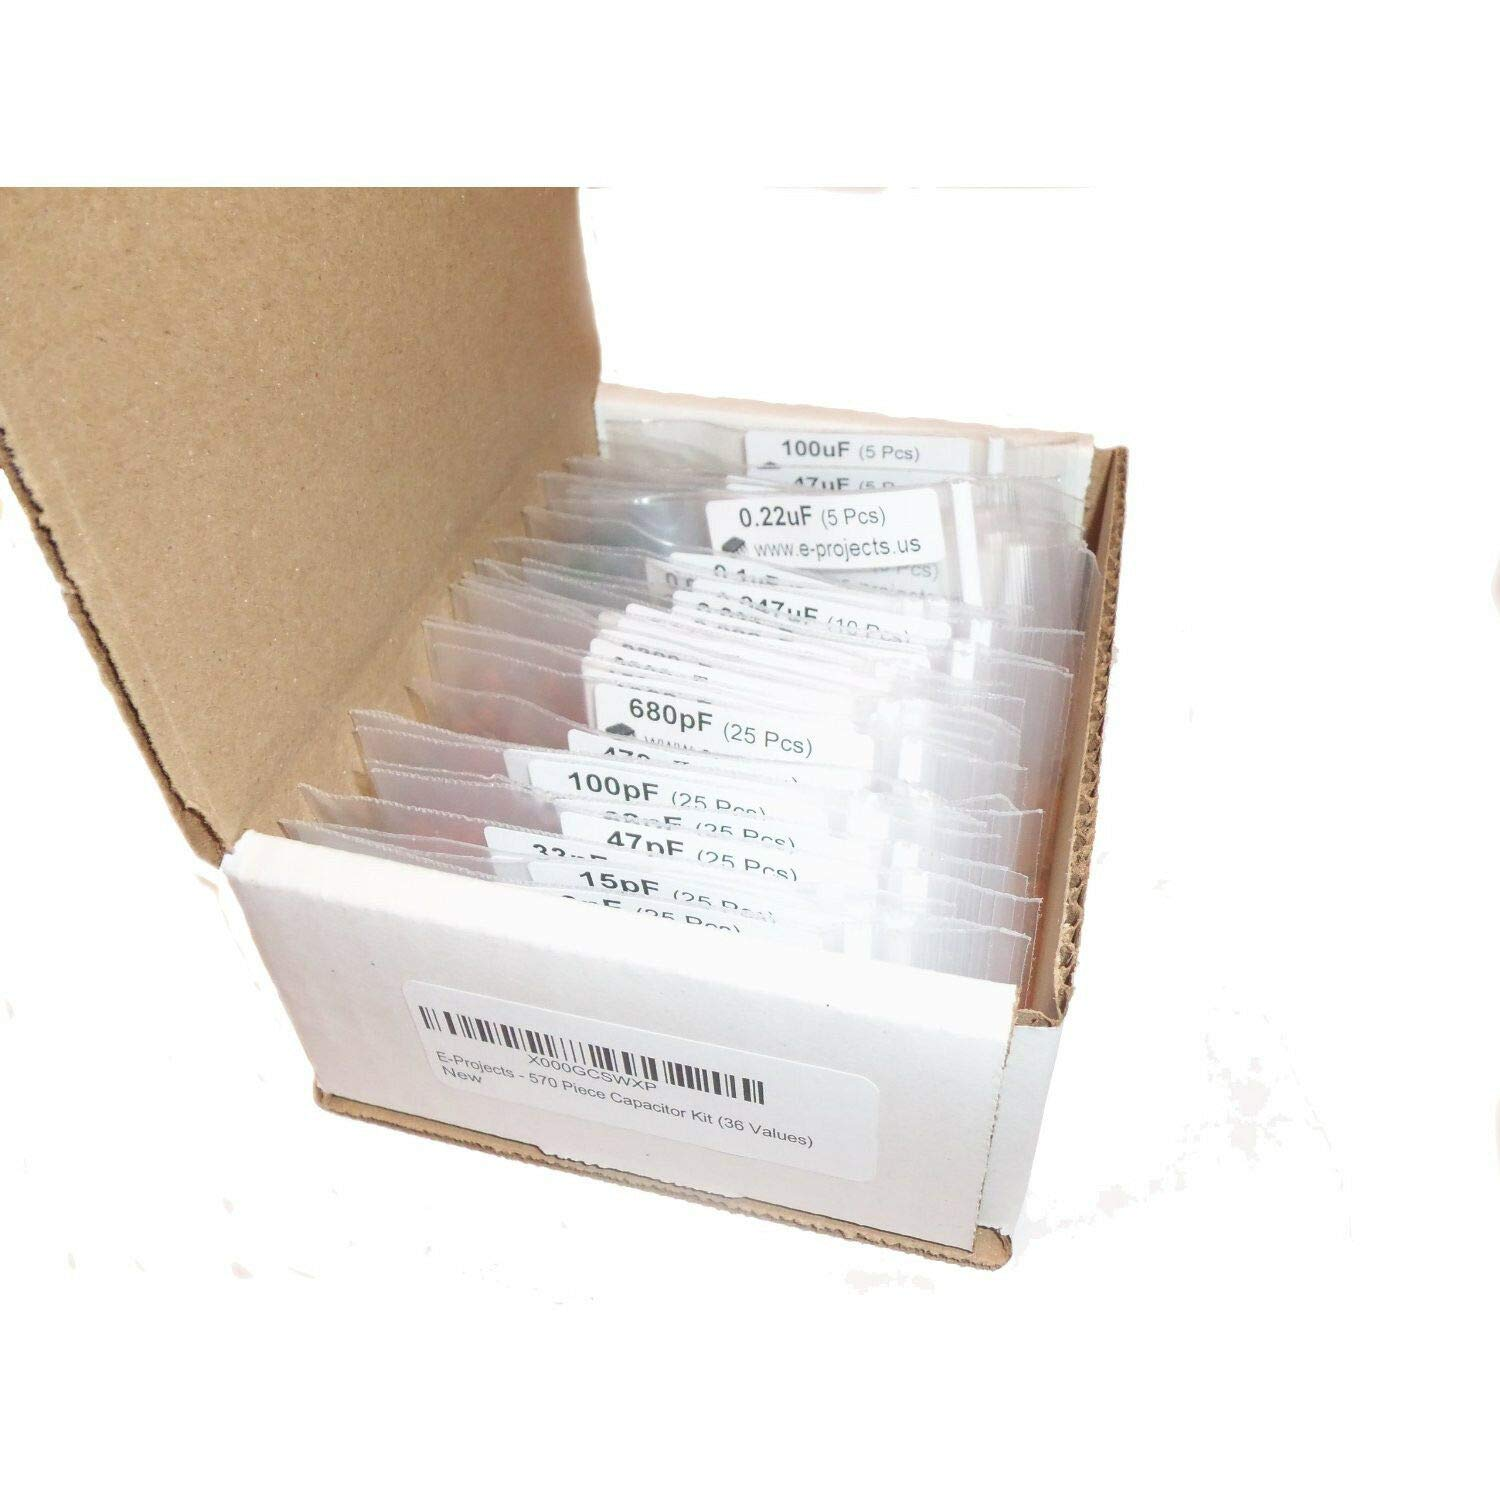 36 Values E-Projects 570 Piece Capacitor Kit